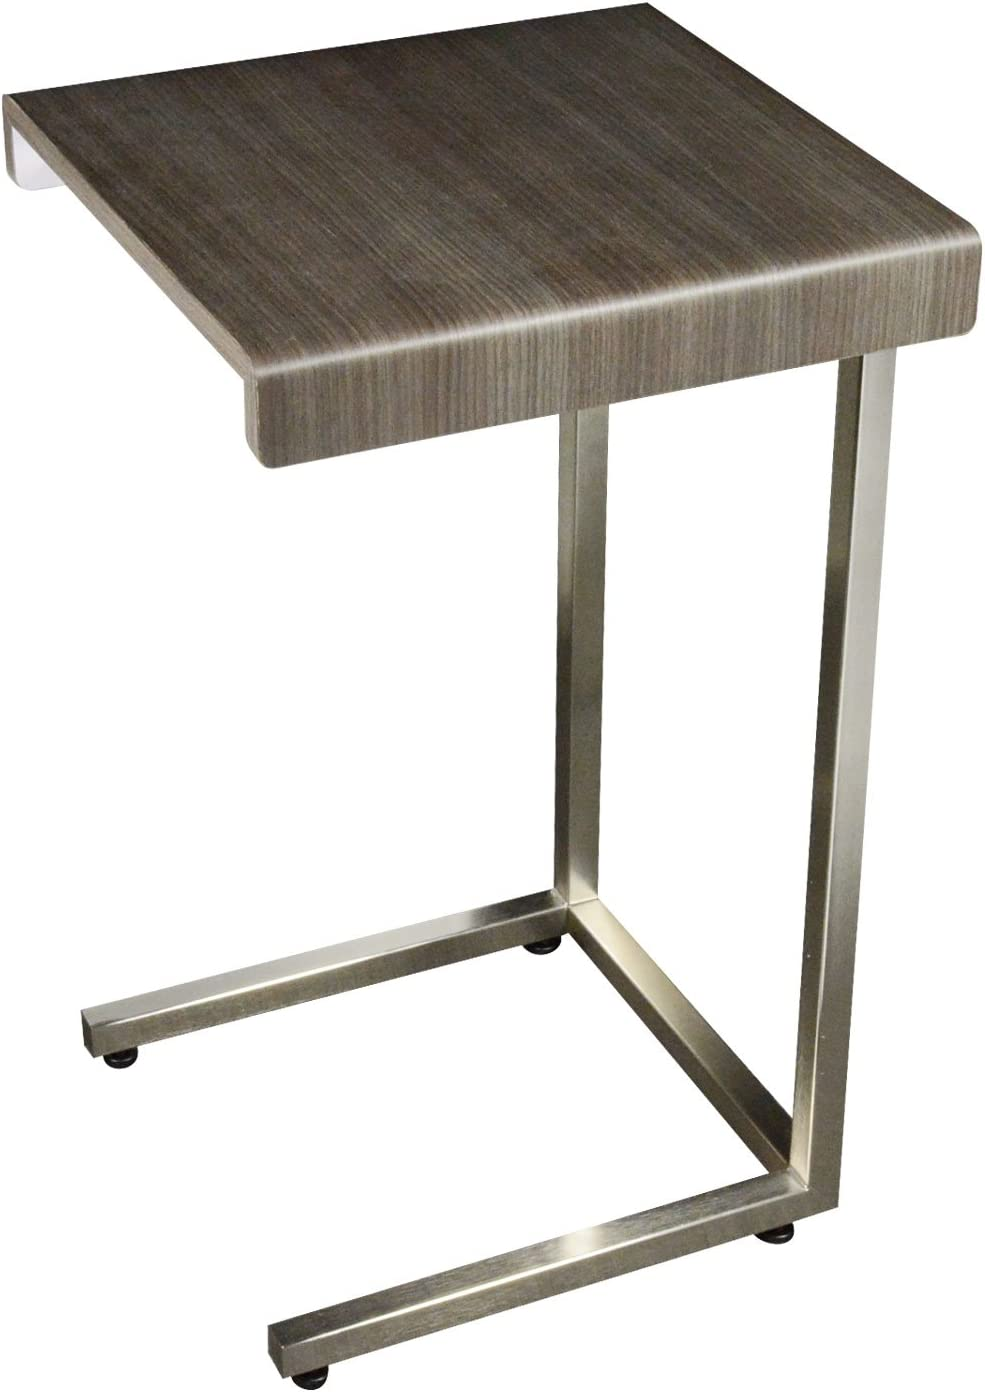 The Jessica C Easy-to-use Table Inexpensive End Laptop w Stand Wood Top Laminate